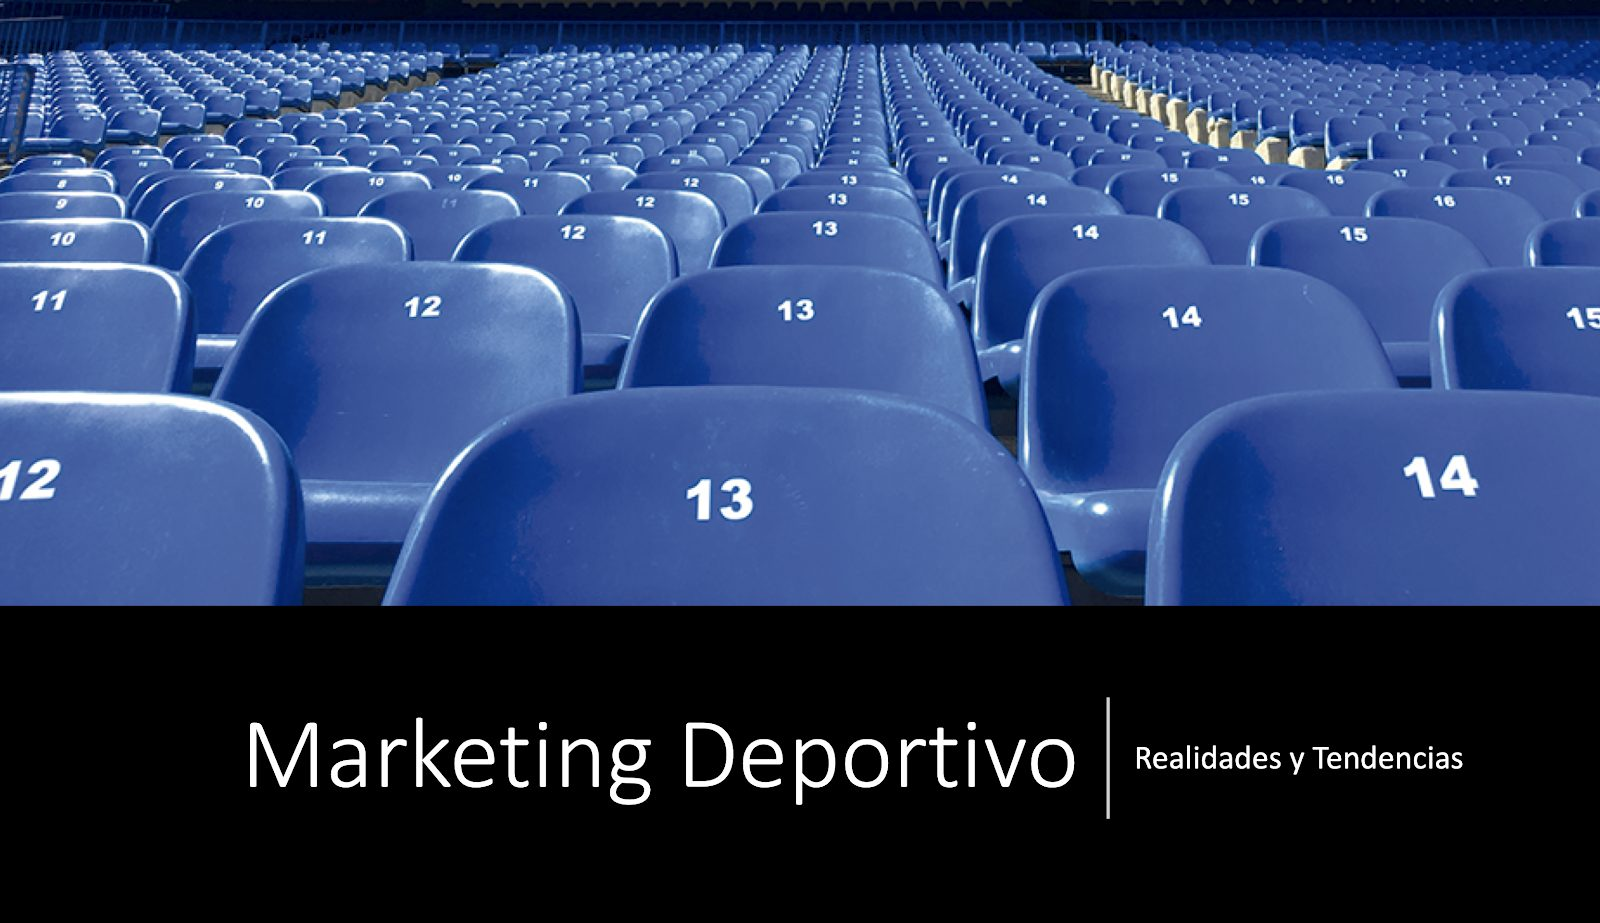 Realidades y tendencias del marketing deportivo